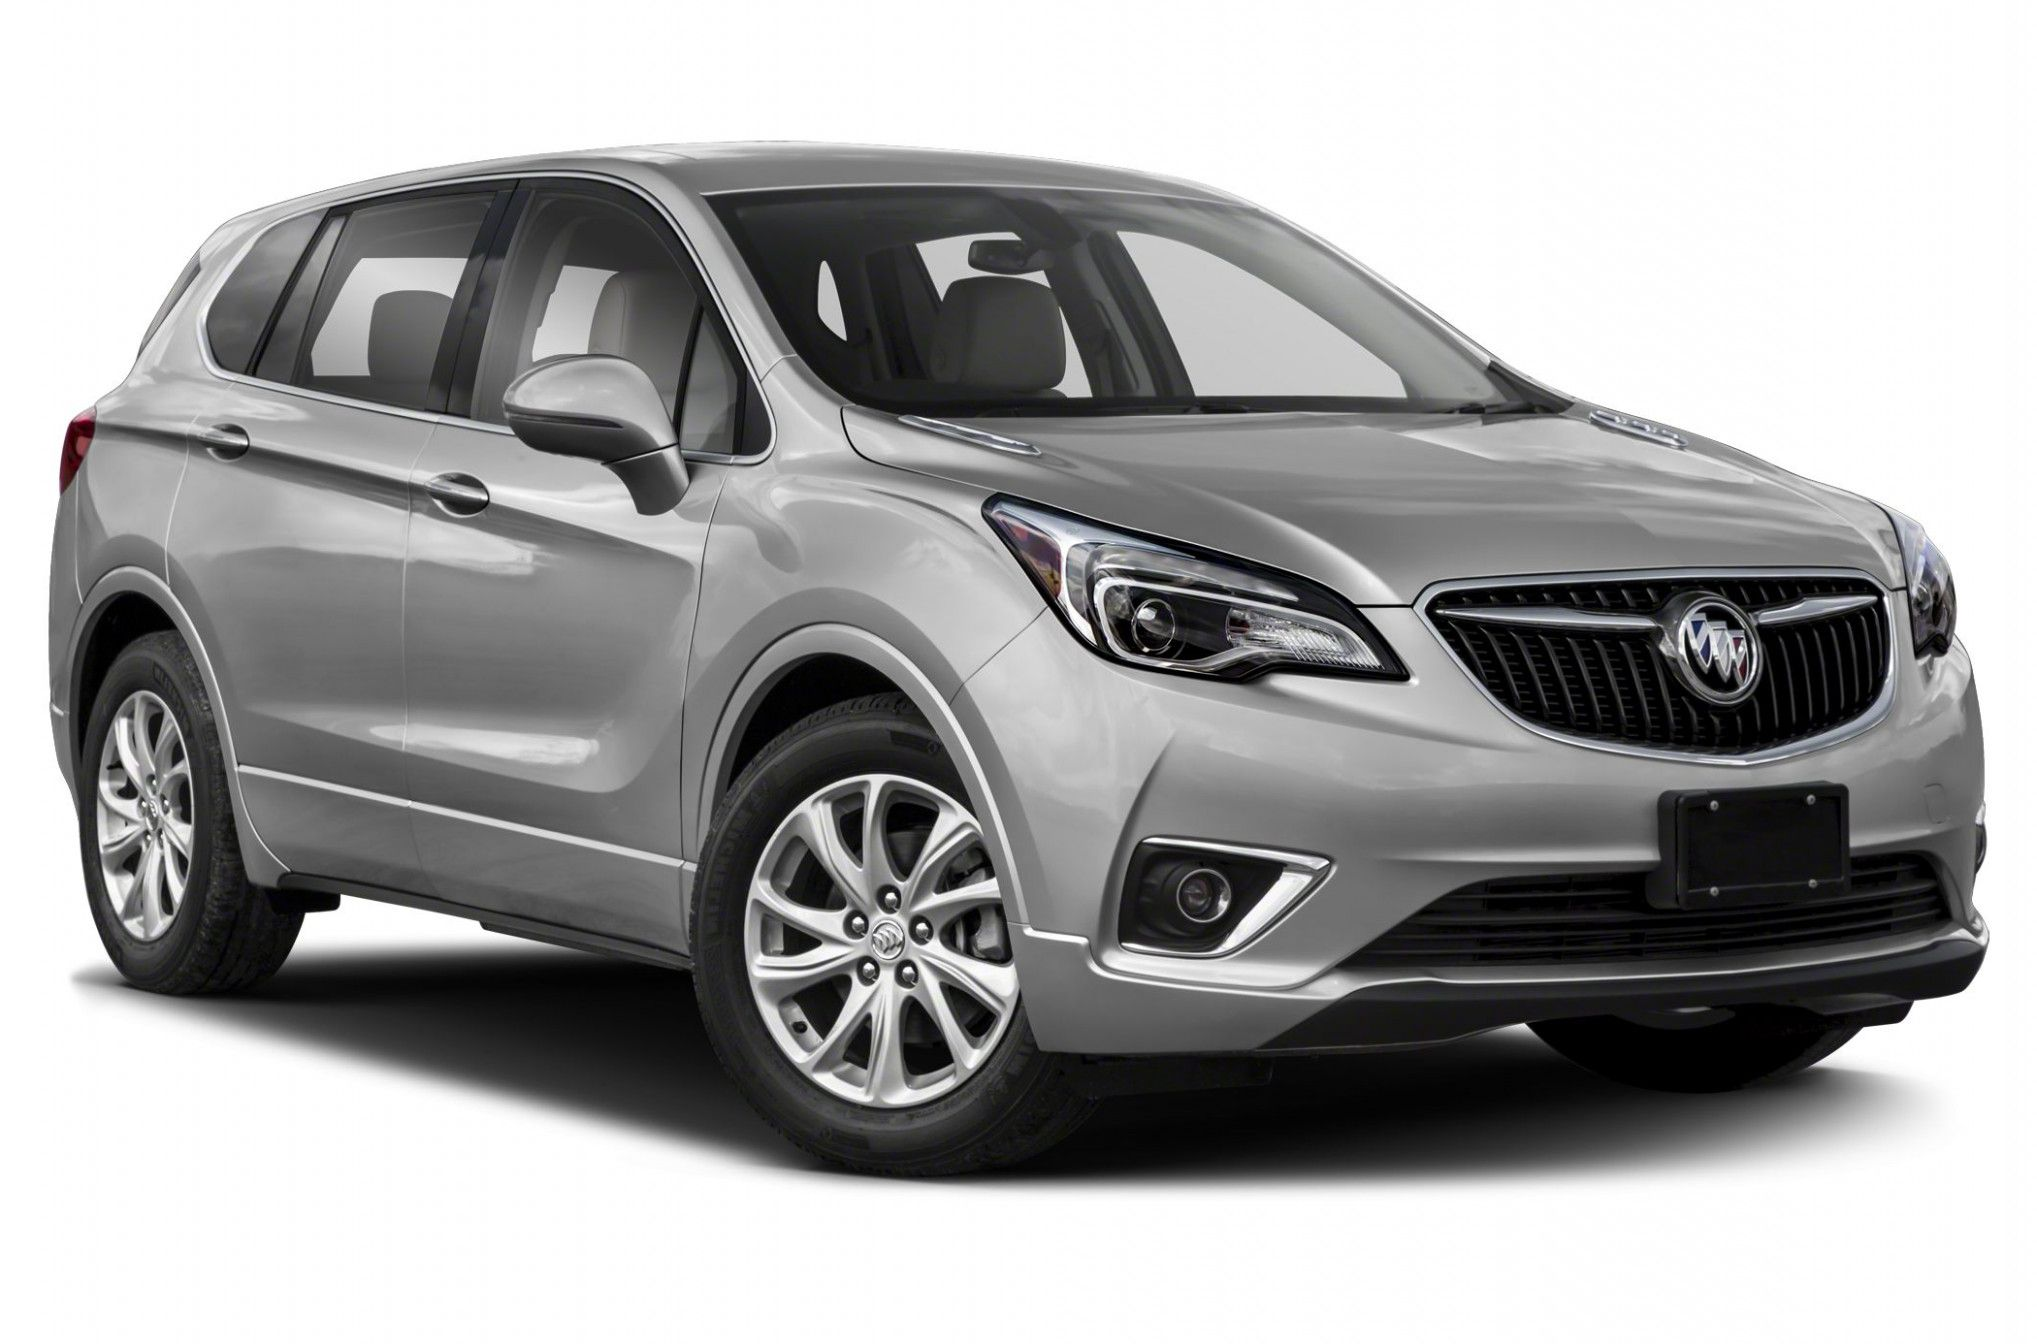 Attending 2020 Buick Envision Specs Can Be A Disaster If